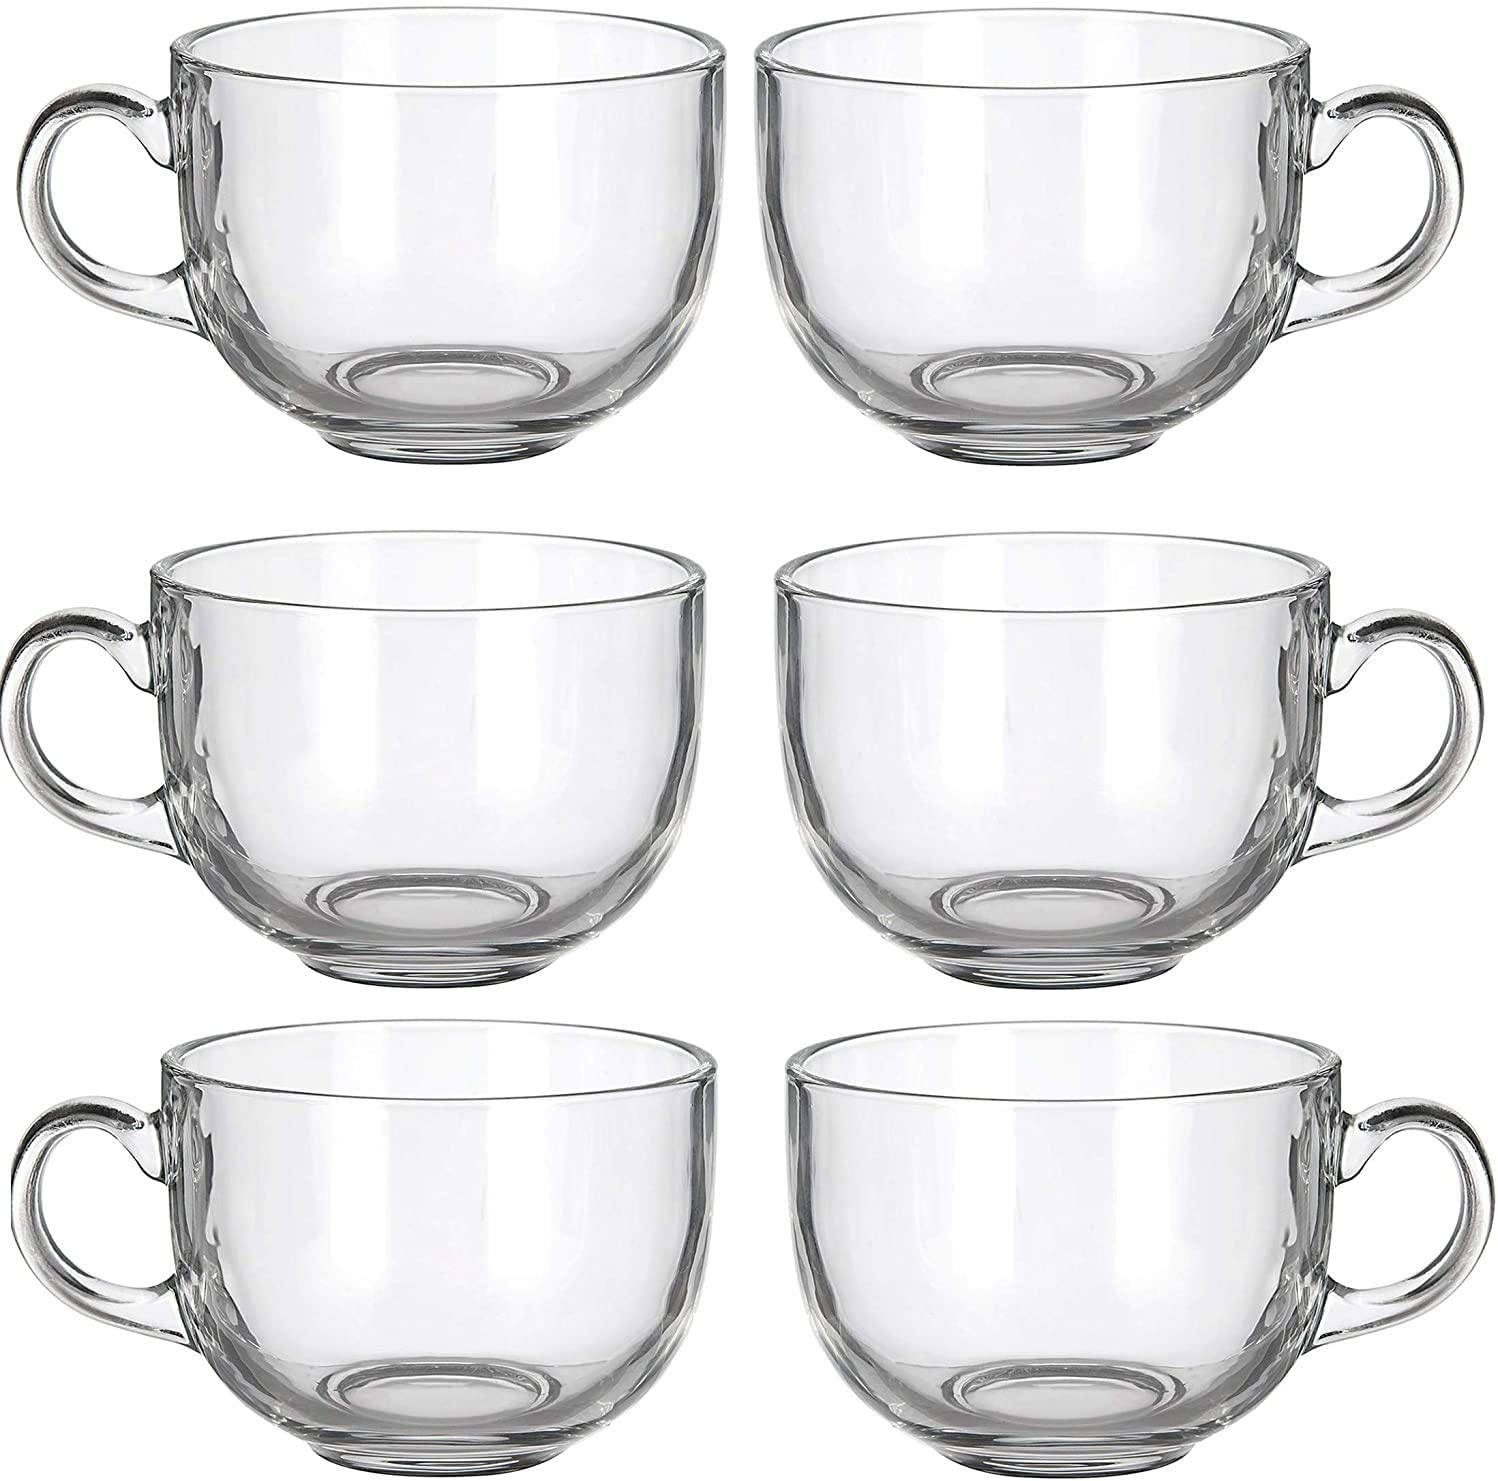 Set of 6 Large 16oz Glass Wide Mouth Coffee Mug Tea Cup With Handle - Dishwasher & Microwave Safe